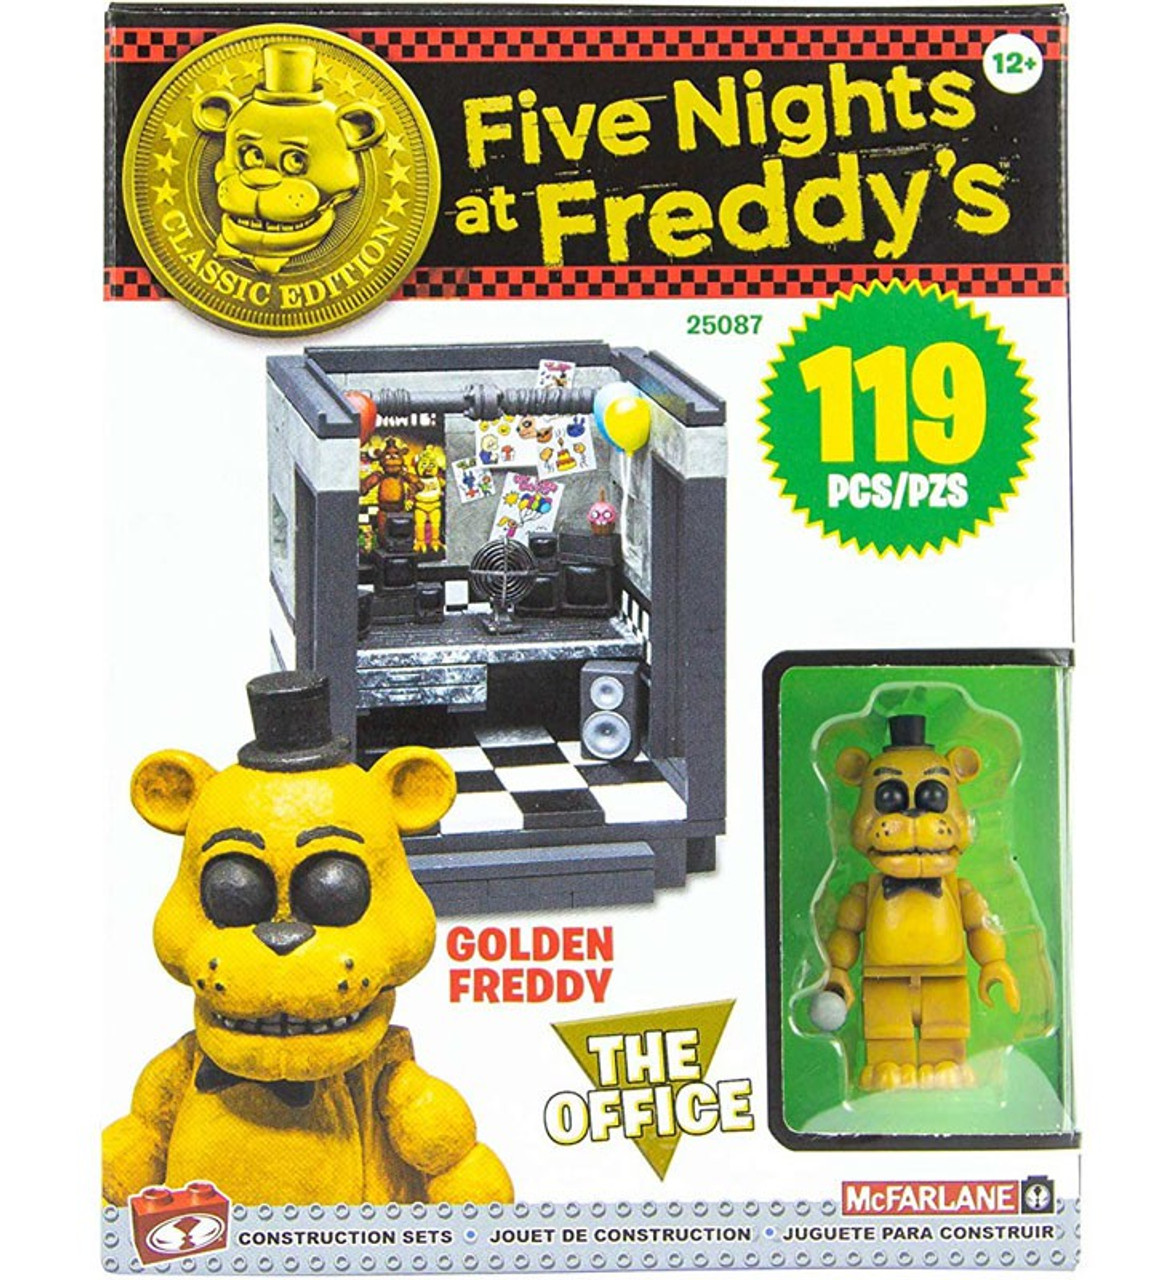 Five Nights at Freddy/'s The Office Small Construction Set Classic Edition